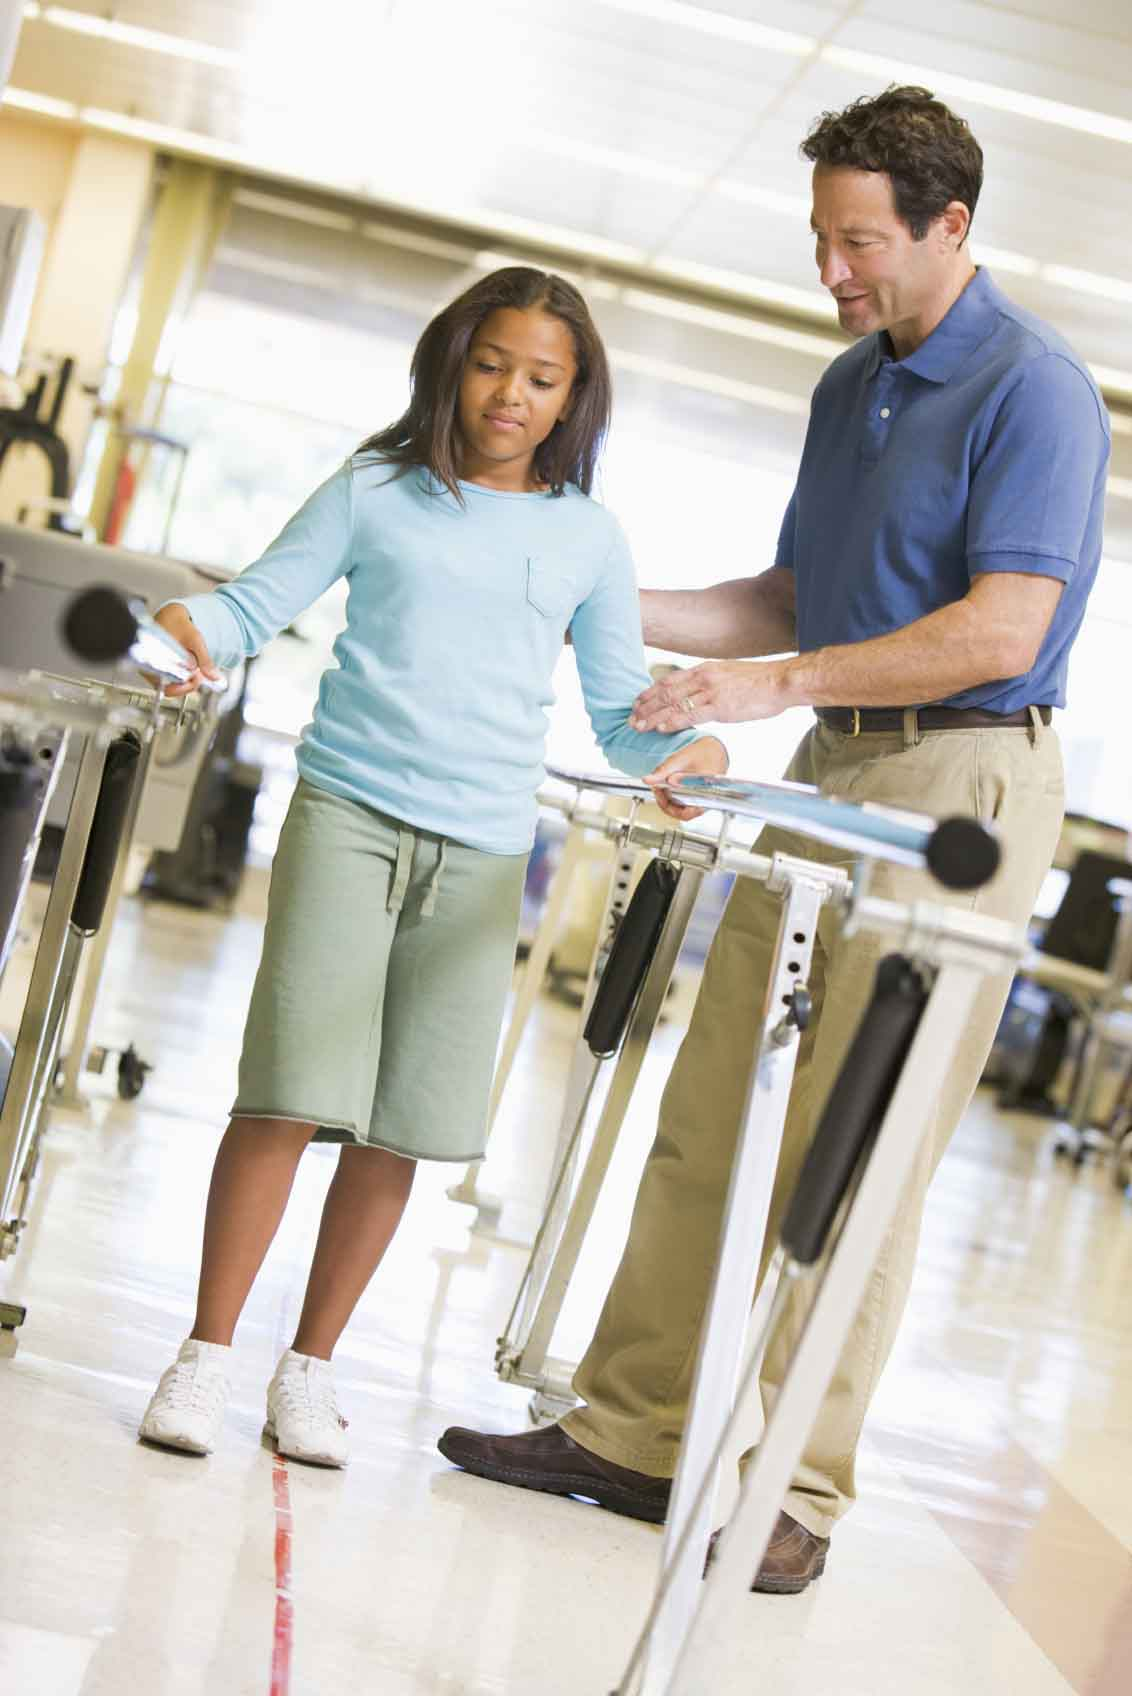 Importance of Occupational Therapy in Health Assistance